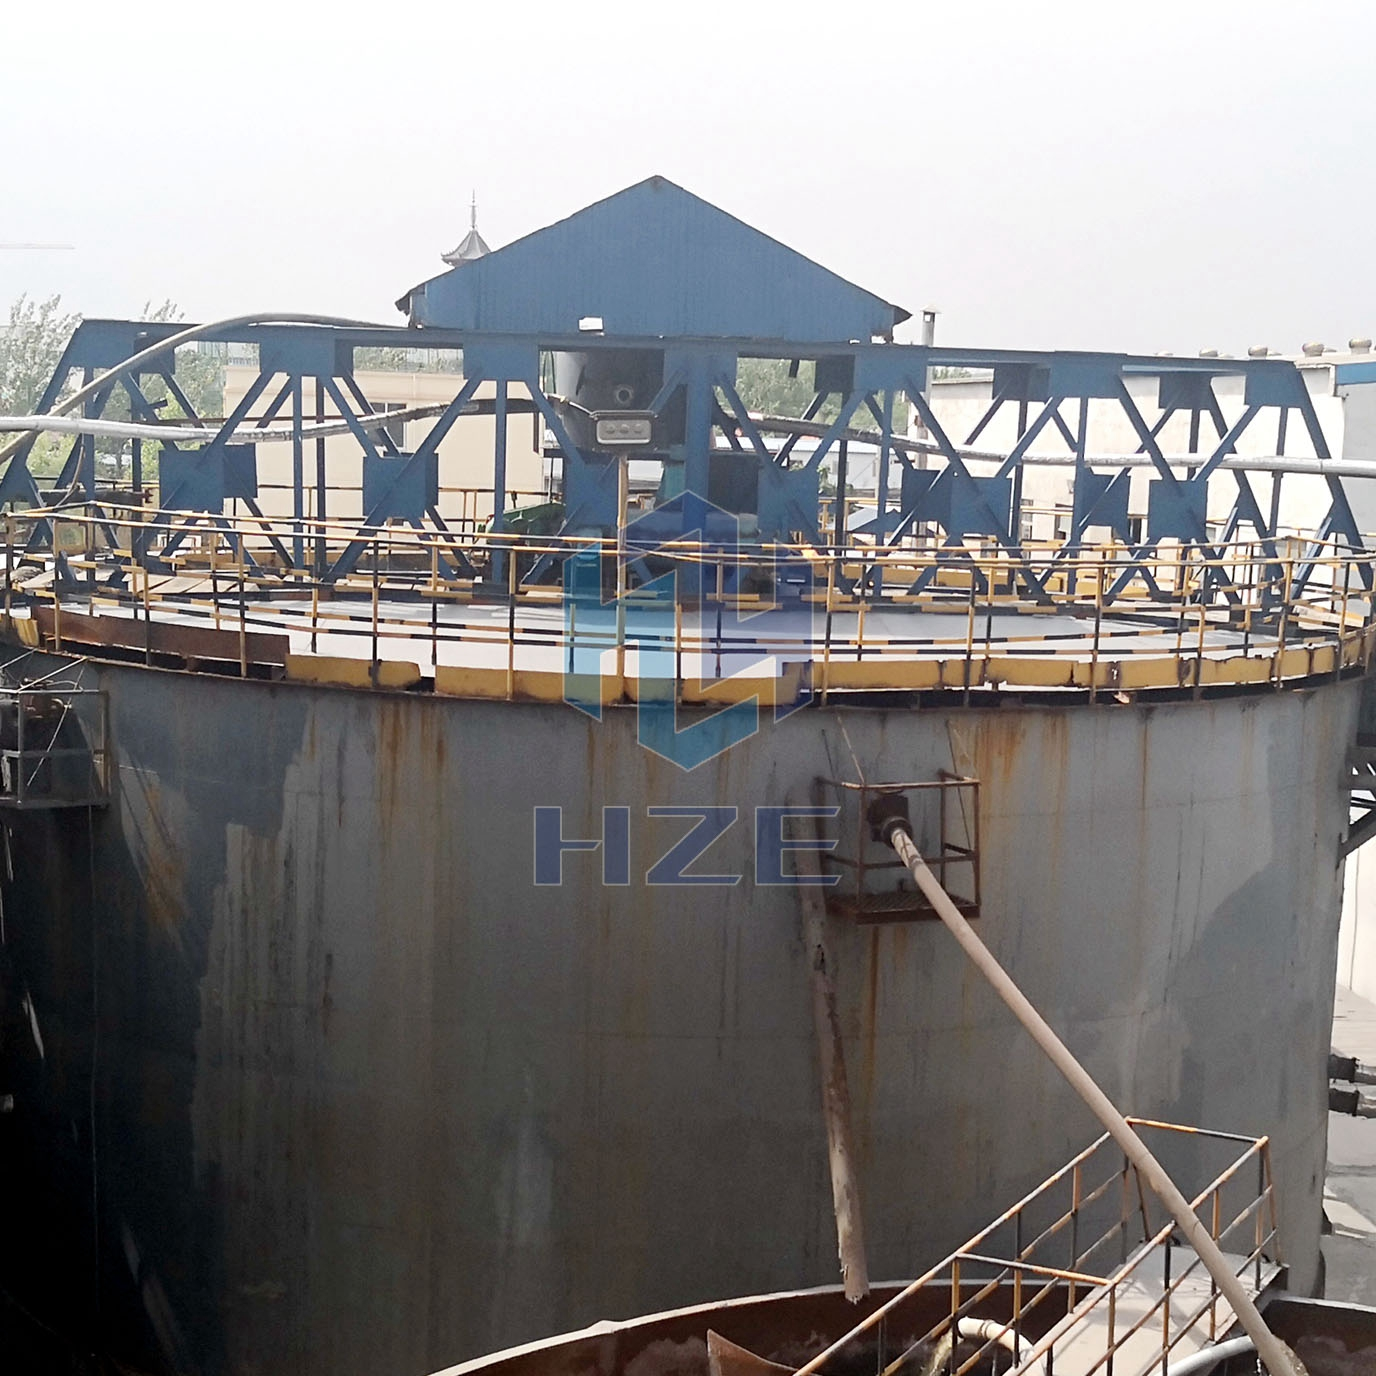 High-rate Thickener for Counter Current Decantation Circuit (CCD Process)